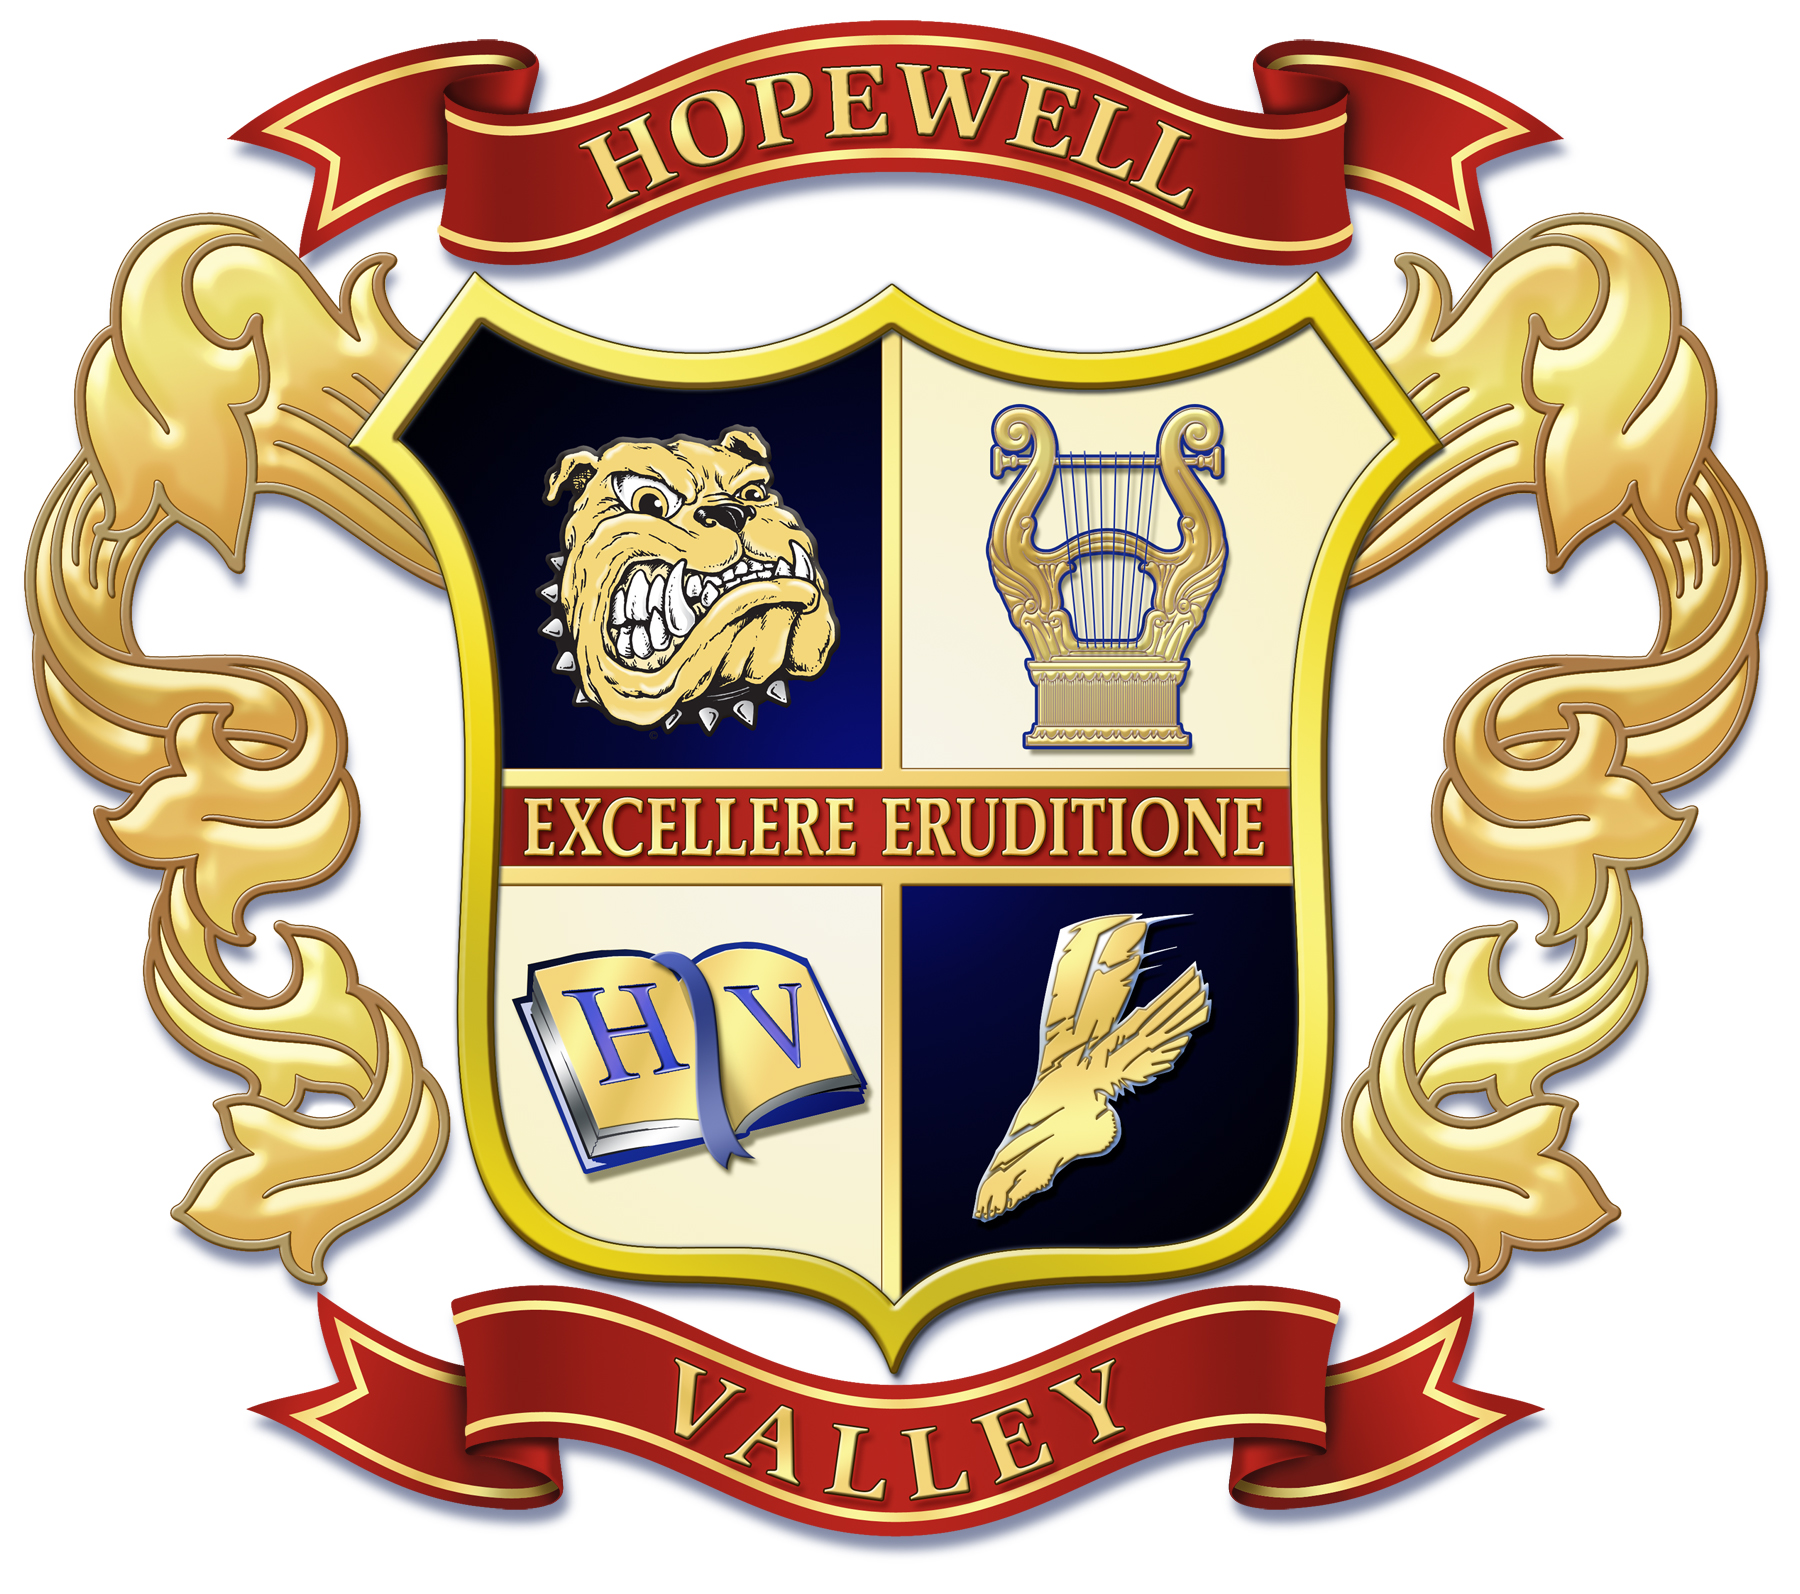 Hopewell Valley Regional School District